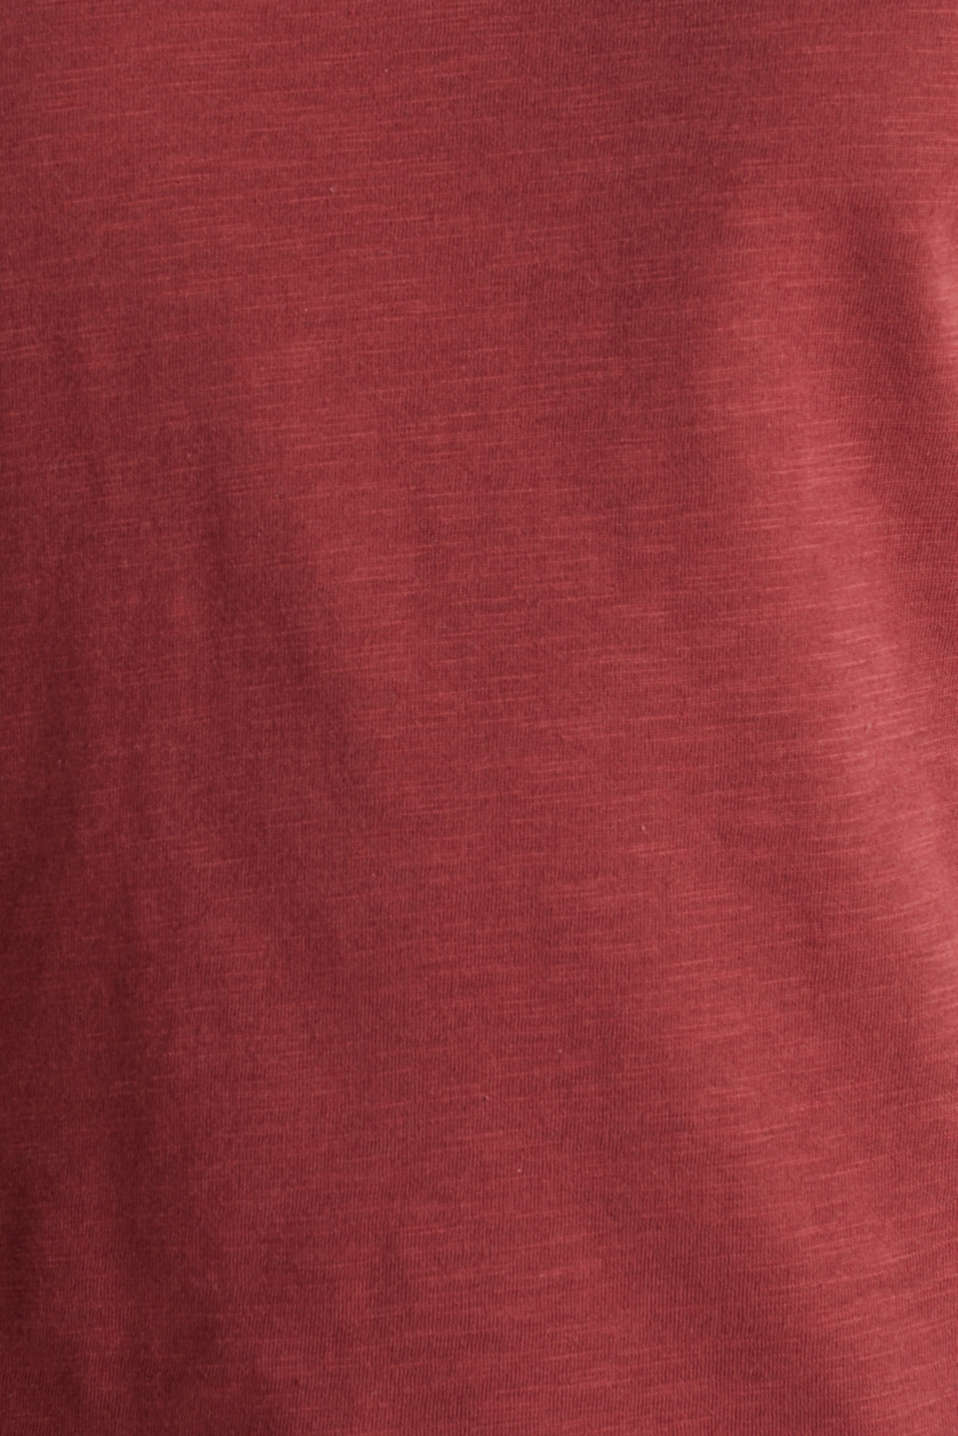 Embroidered top made of organic cotton, DARK RED, detail image number 4